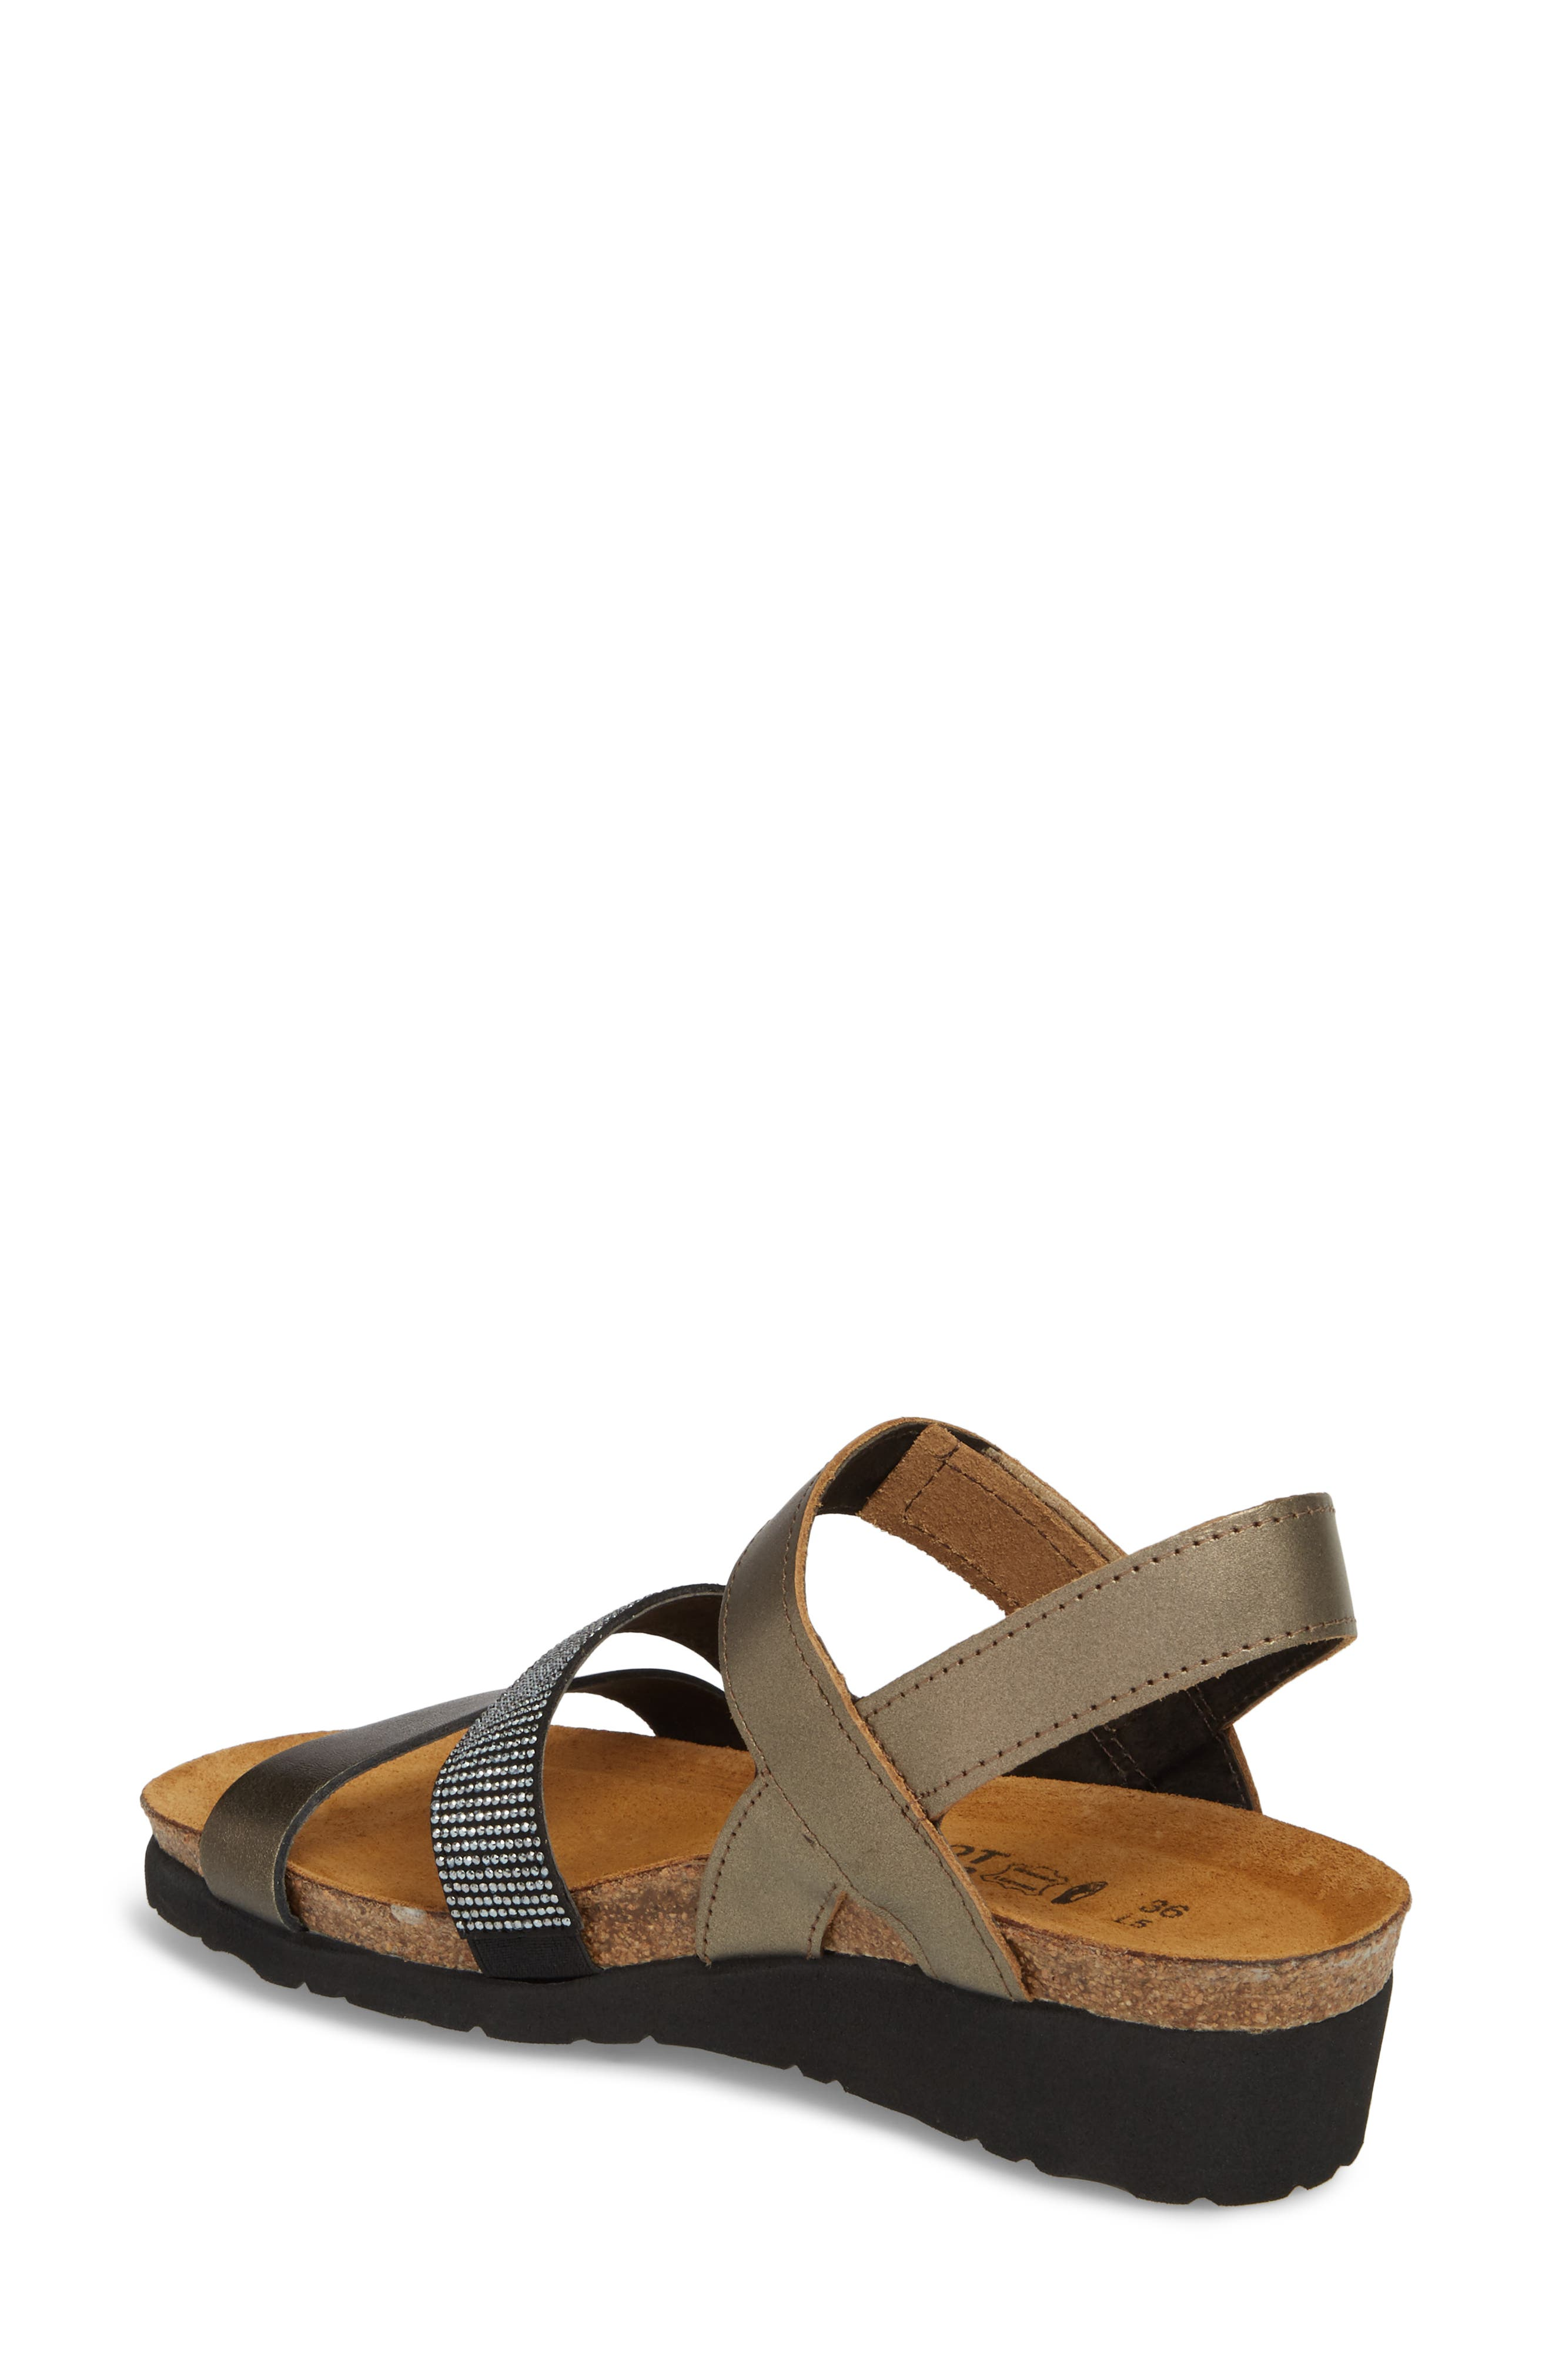 'Krista' Sandal,                             Alternate thumbnail 2, color,                             Pewter Leather